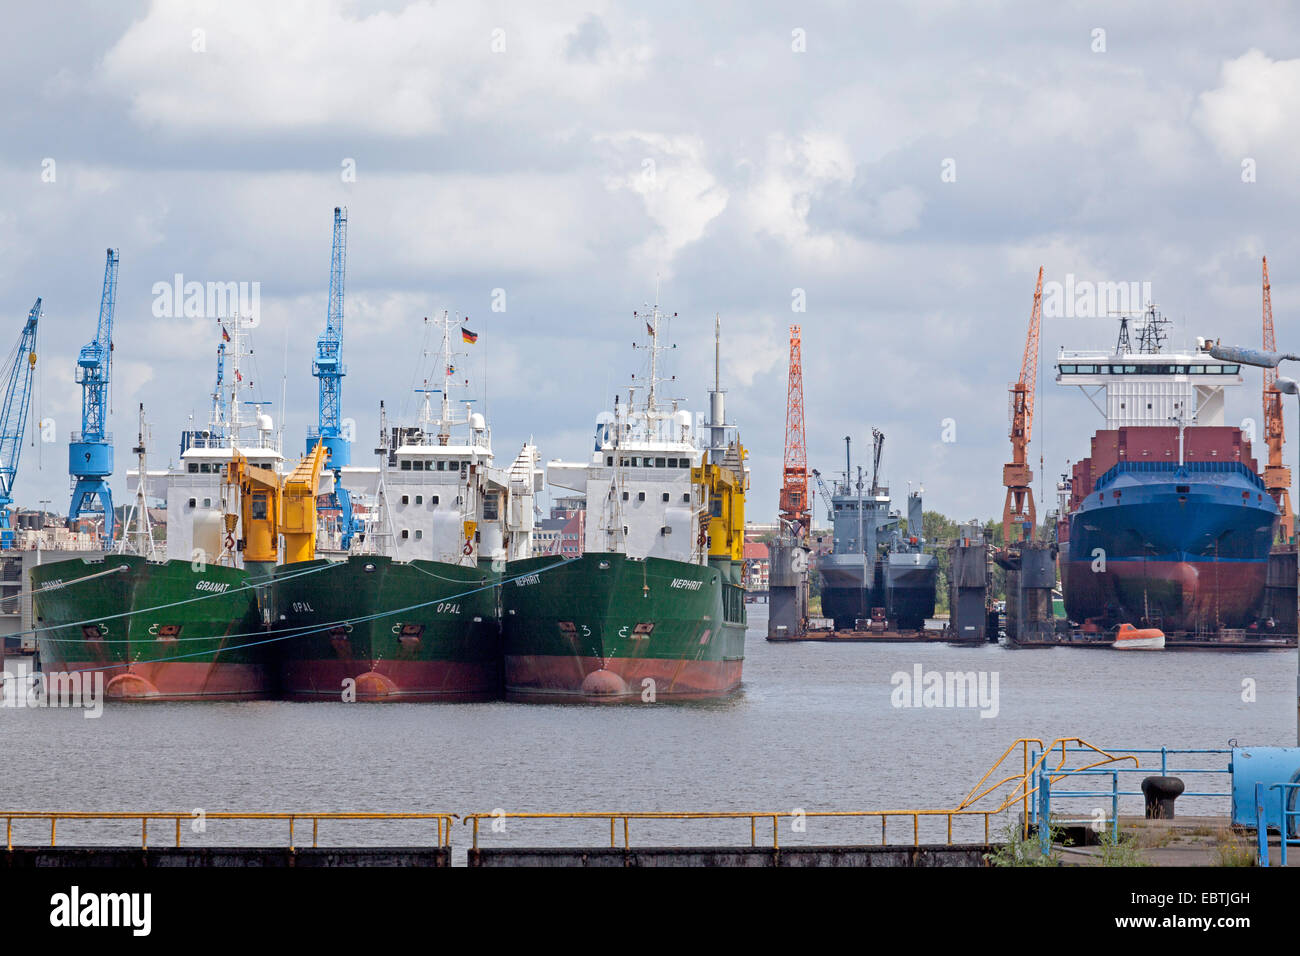 freighters in the Emdener inland harbour, Germany, Lower Saxony, East Frisia, Emden - Stock Image